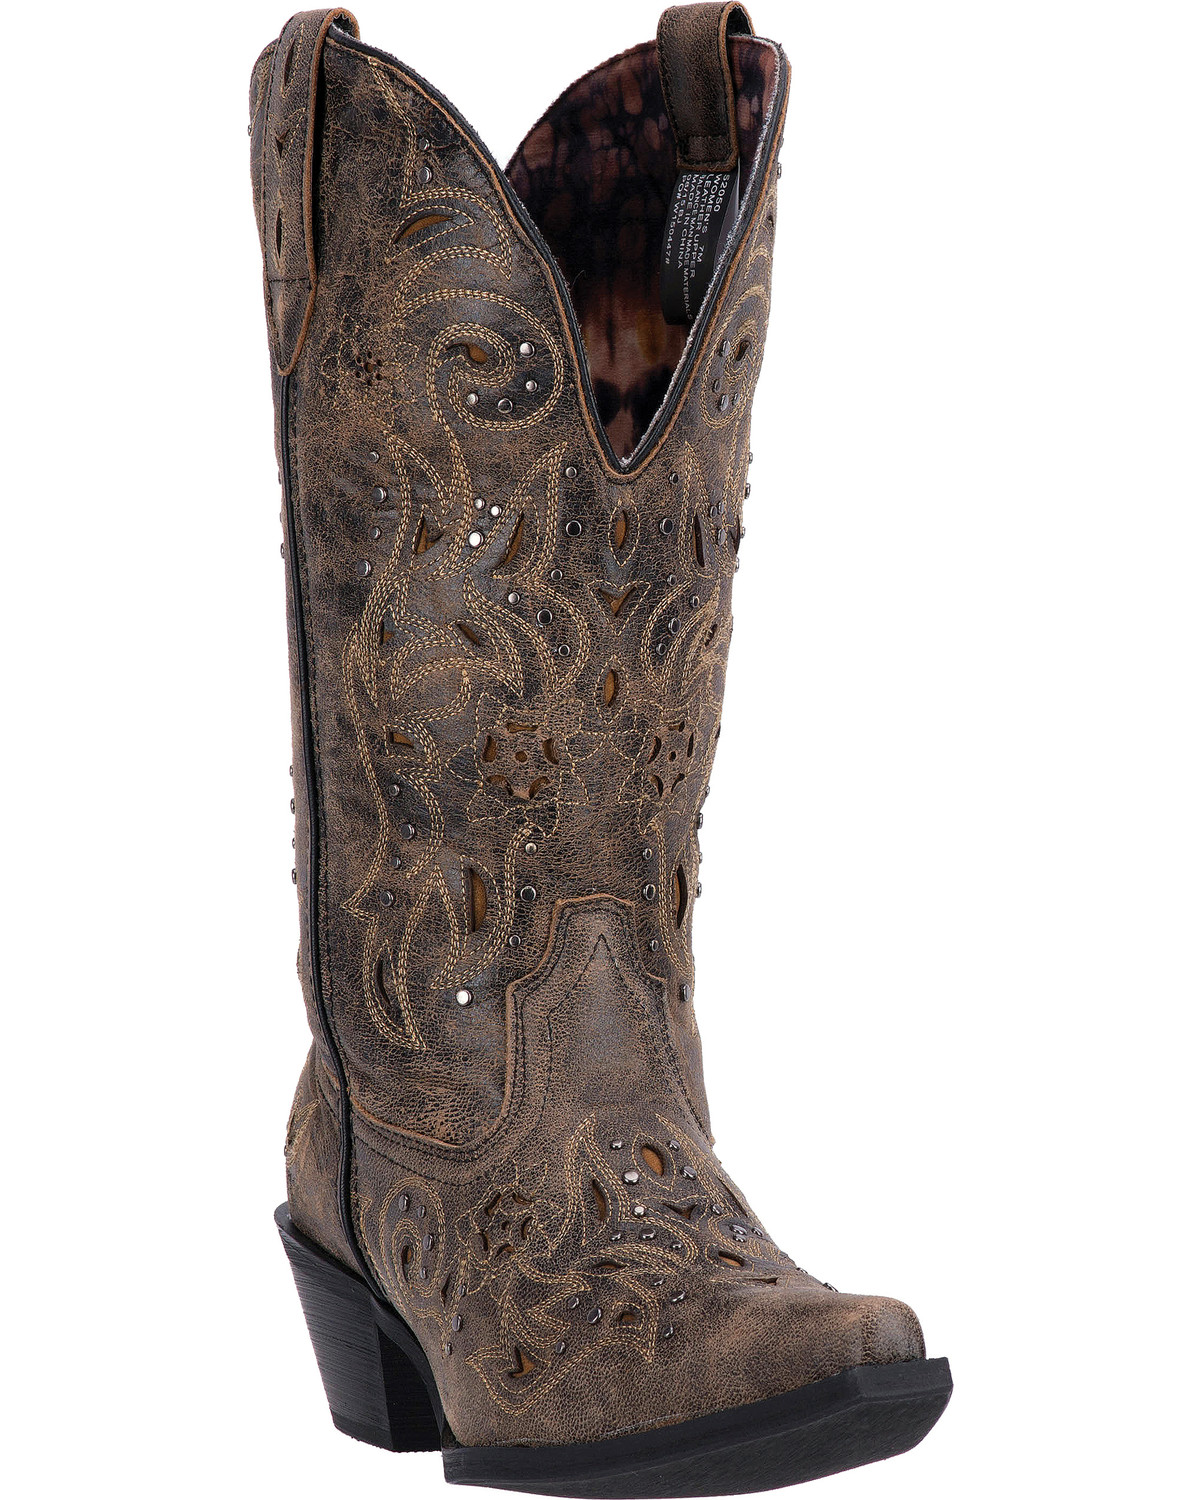 guide trading boot comforter most post the sierra western boots womens comfortable cowboy